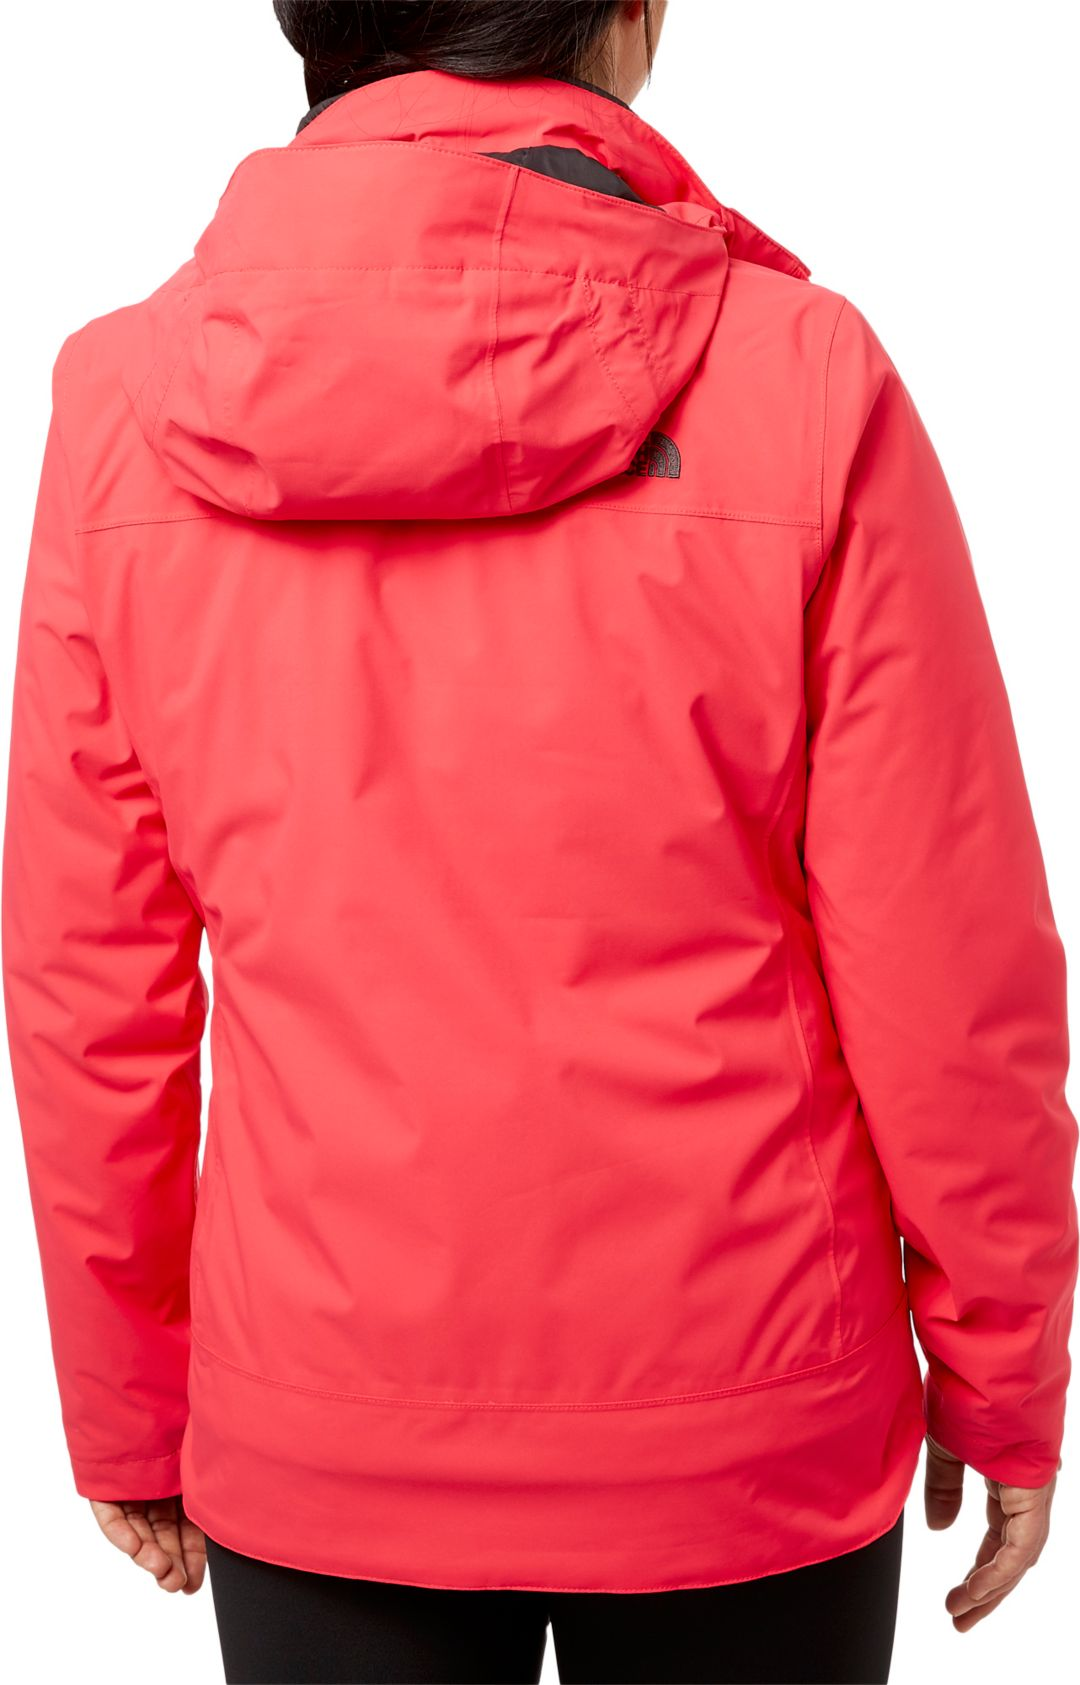 bbbcaa438 The North Face Women's Carto Triclimate Jacket